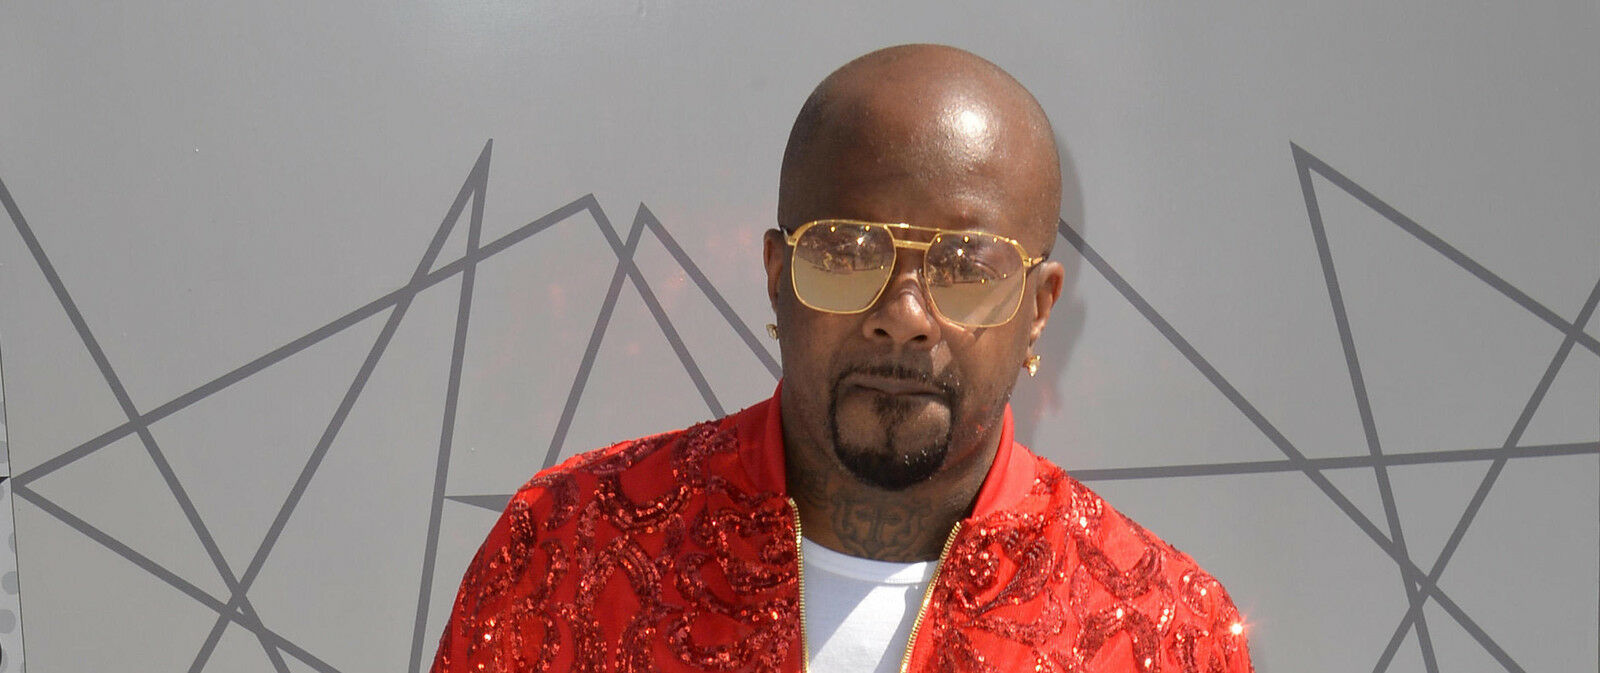 Jermaine Dupri with Xscape, Jagged Edge and more